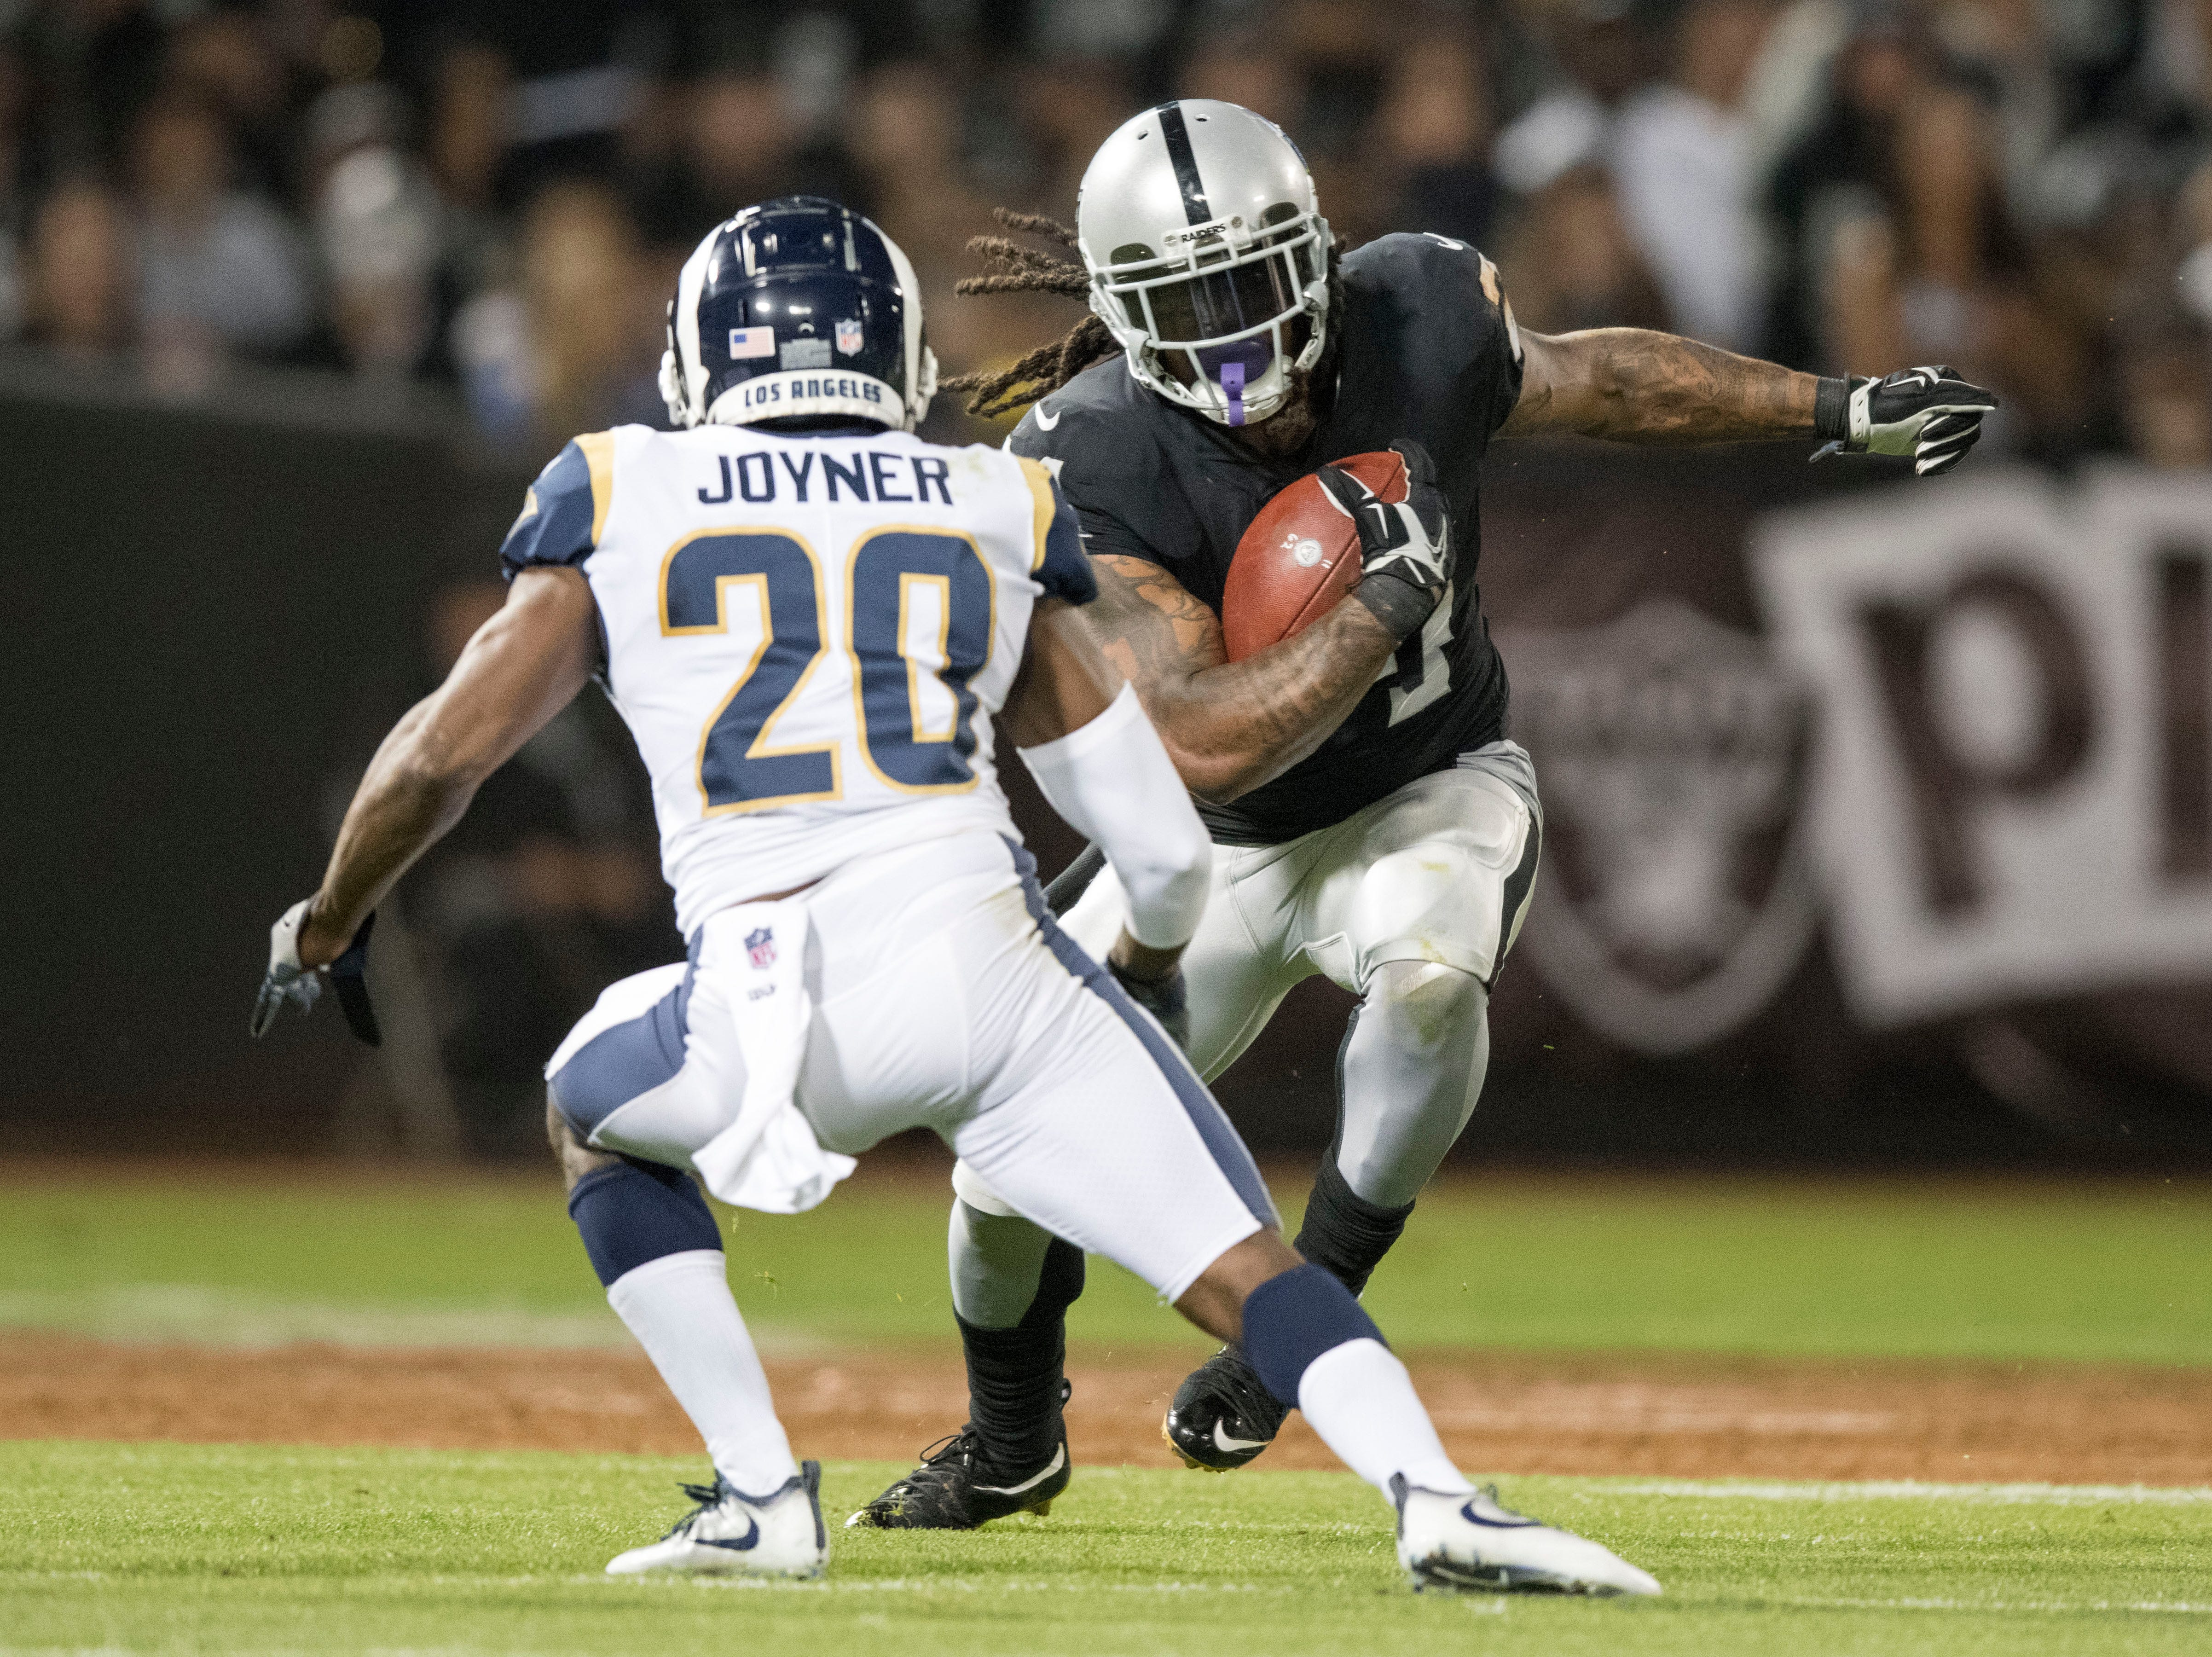 September 10, 2018; Oakland, CA, USA; Oakland Raiders running back Marshawn Lynch (24) runs the football against Los Angeles Rams safety Lamarcus Joyner (20) during the first quarter at Oakland Coliseum. Mandatory Credit: Kyle Terada-USA TODAY Sports